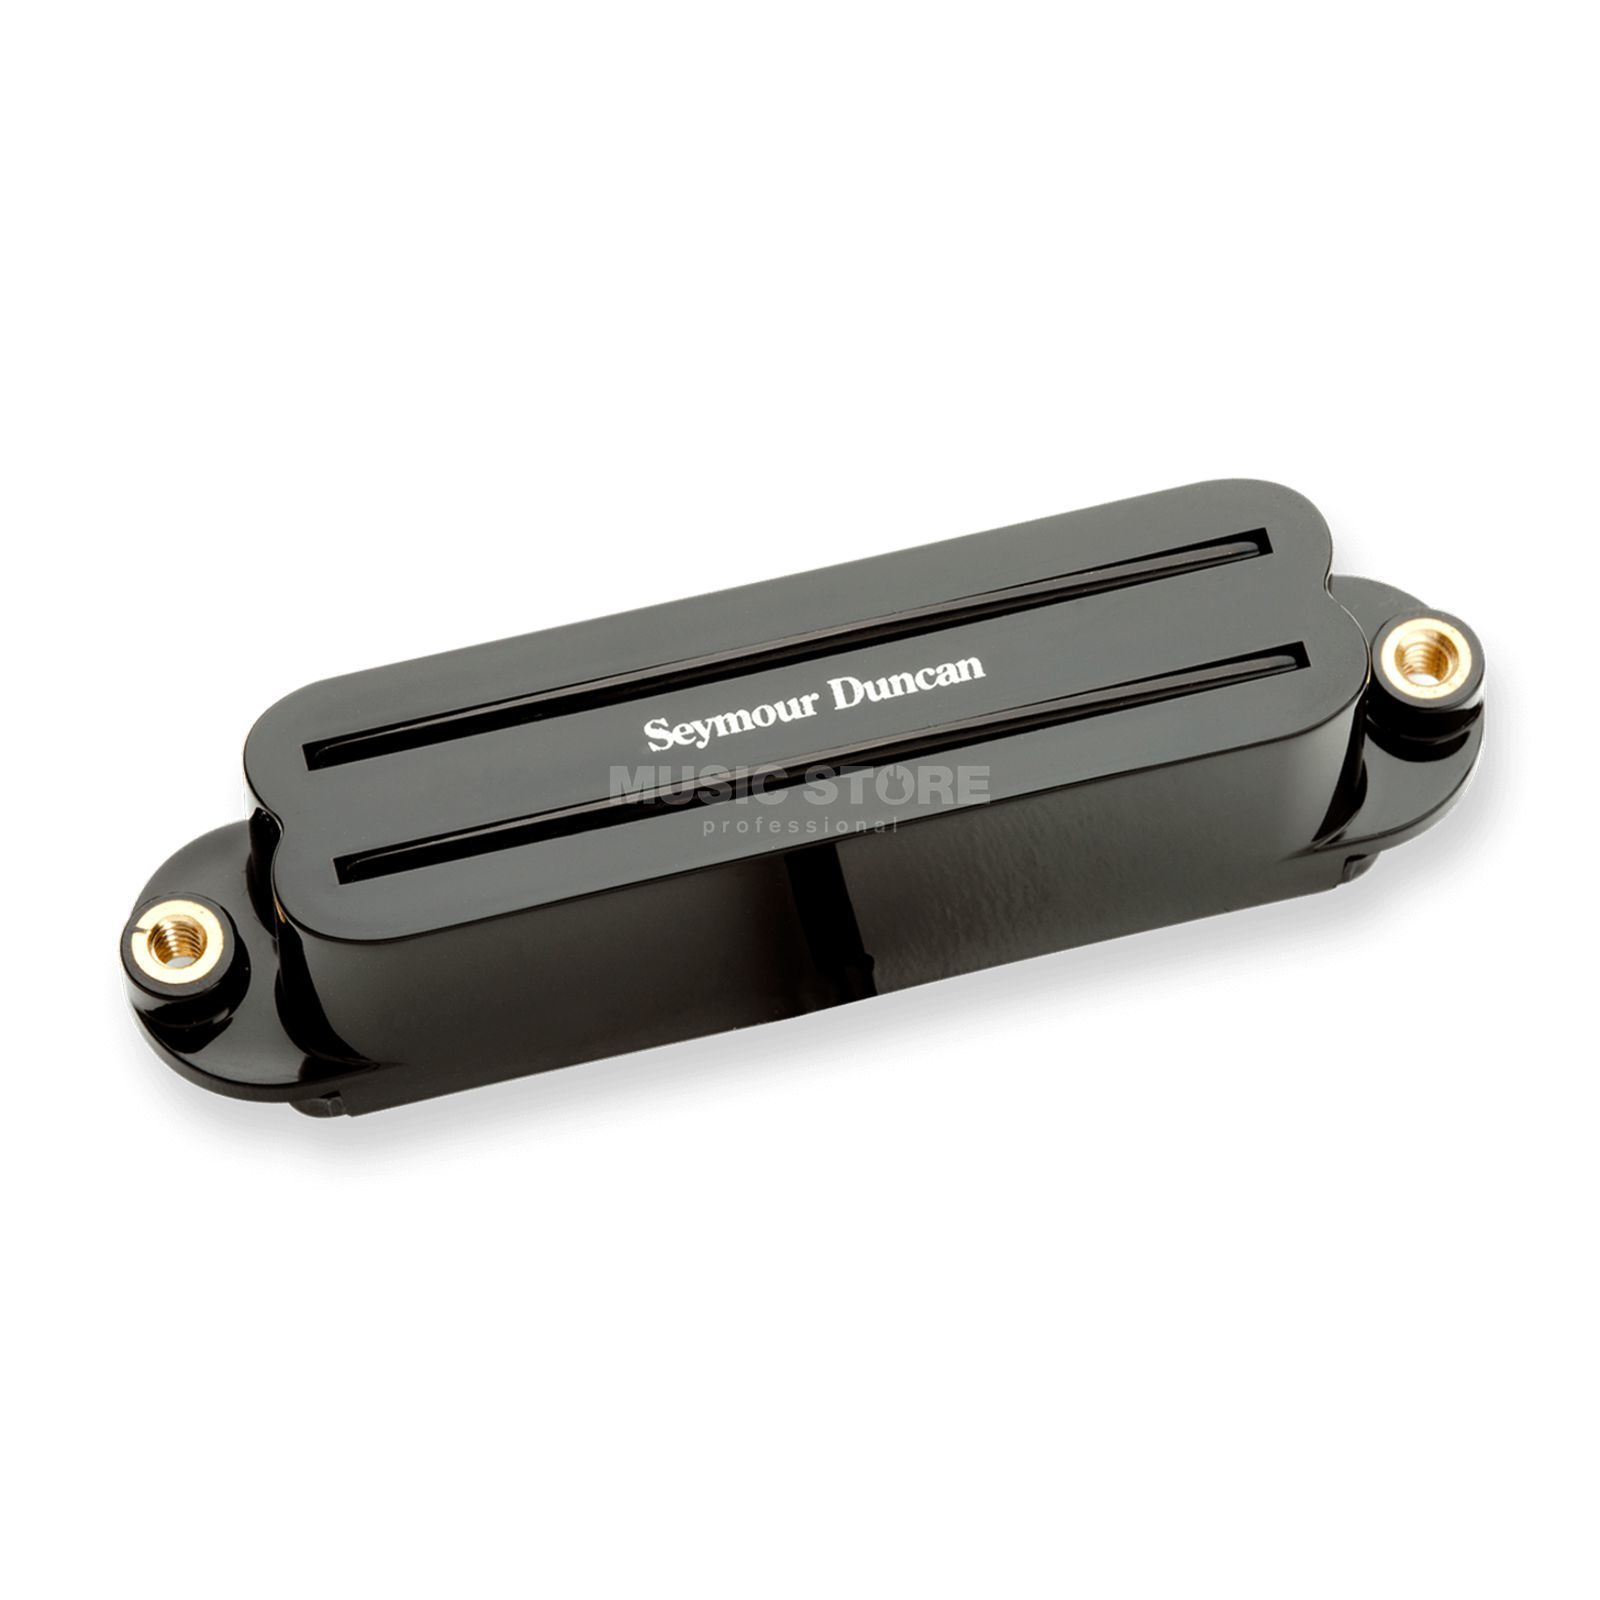 Seymour Duncan Strat Cool Rail Bridge black 4-phase Immagine prodotto